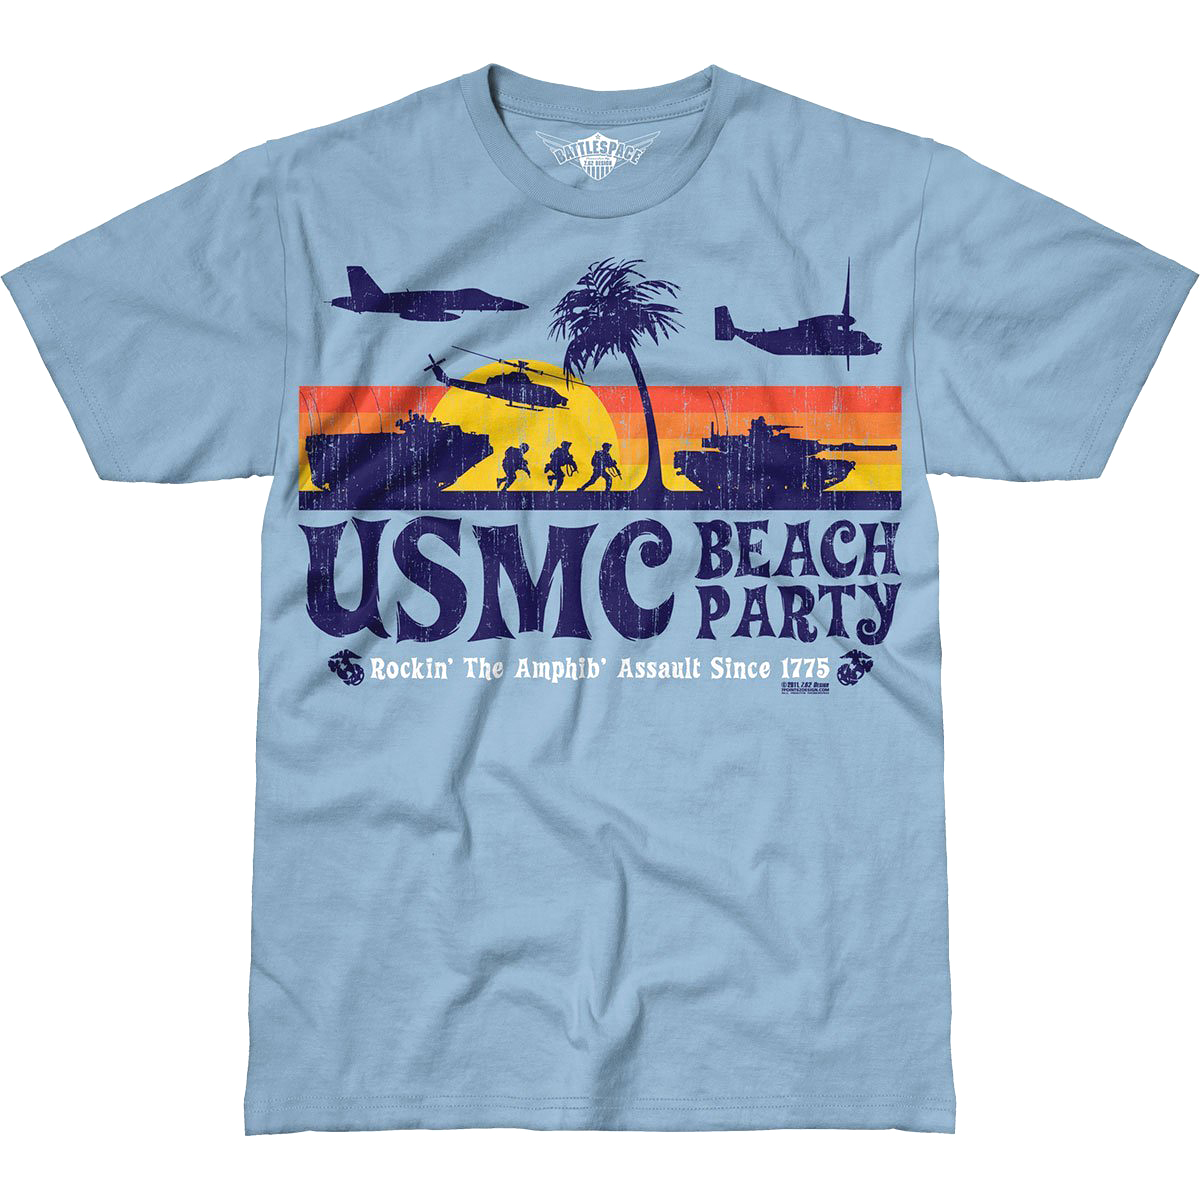 Design Usmc Beach Party Battlespace T Shirt Marines